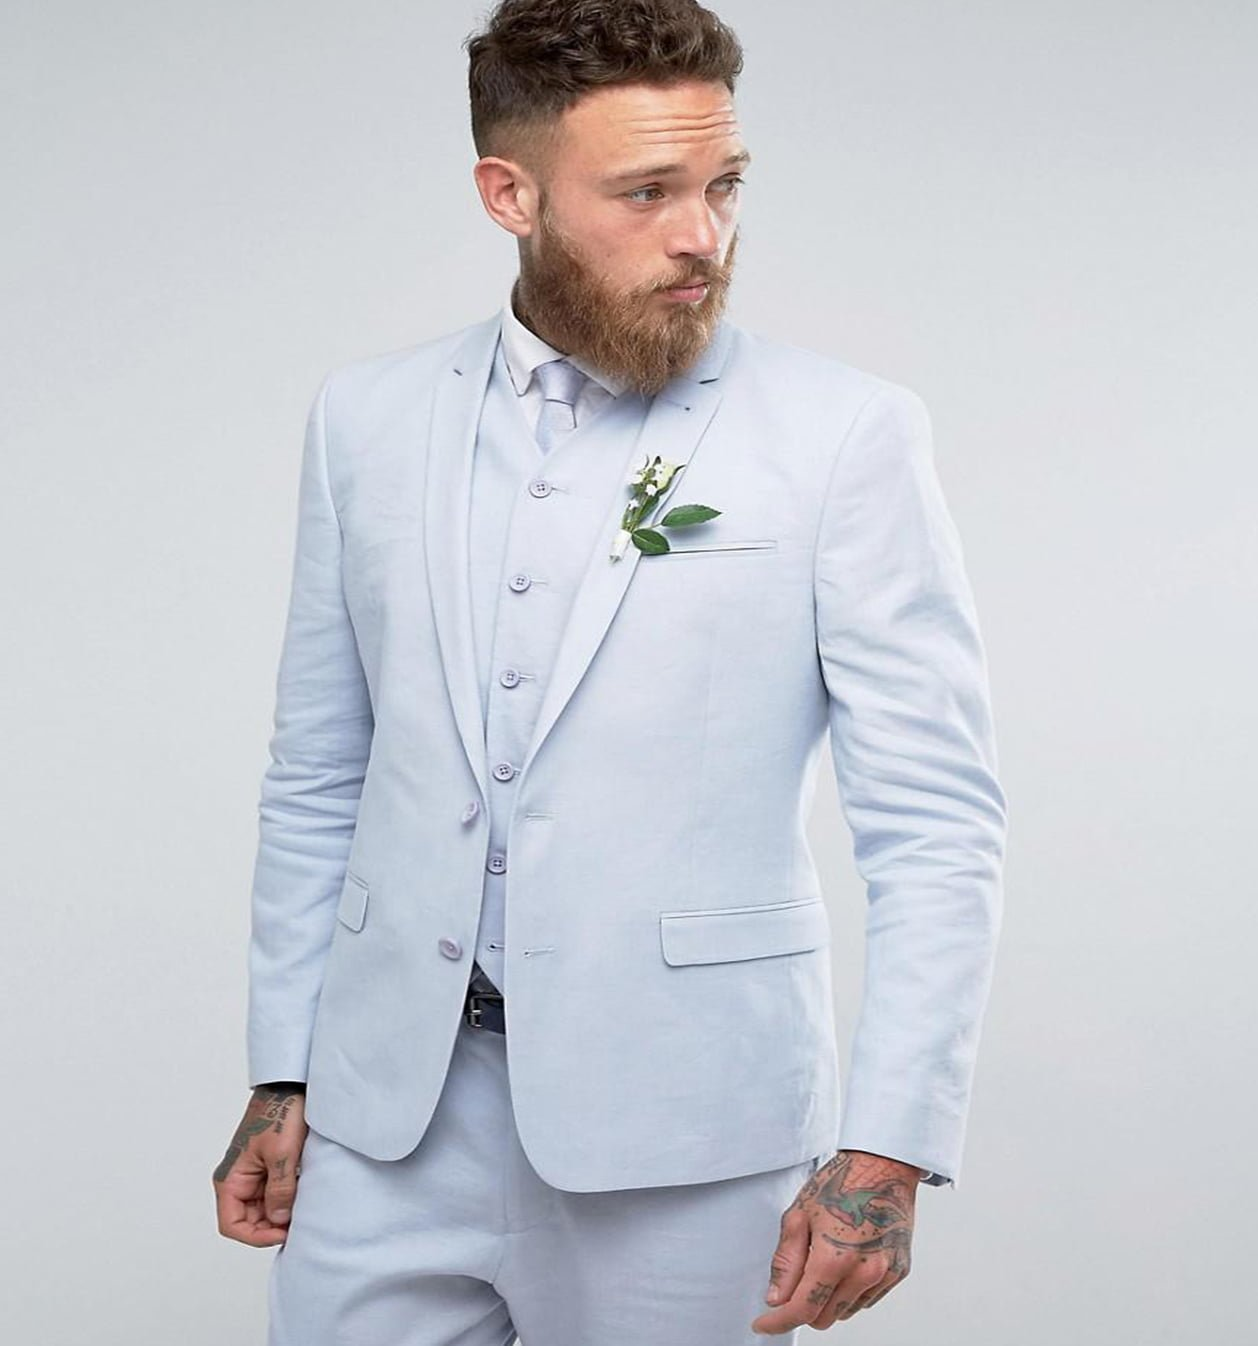 groom-suit-styles